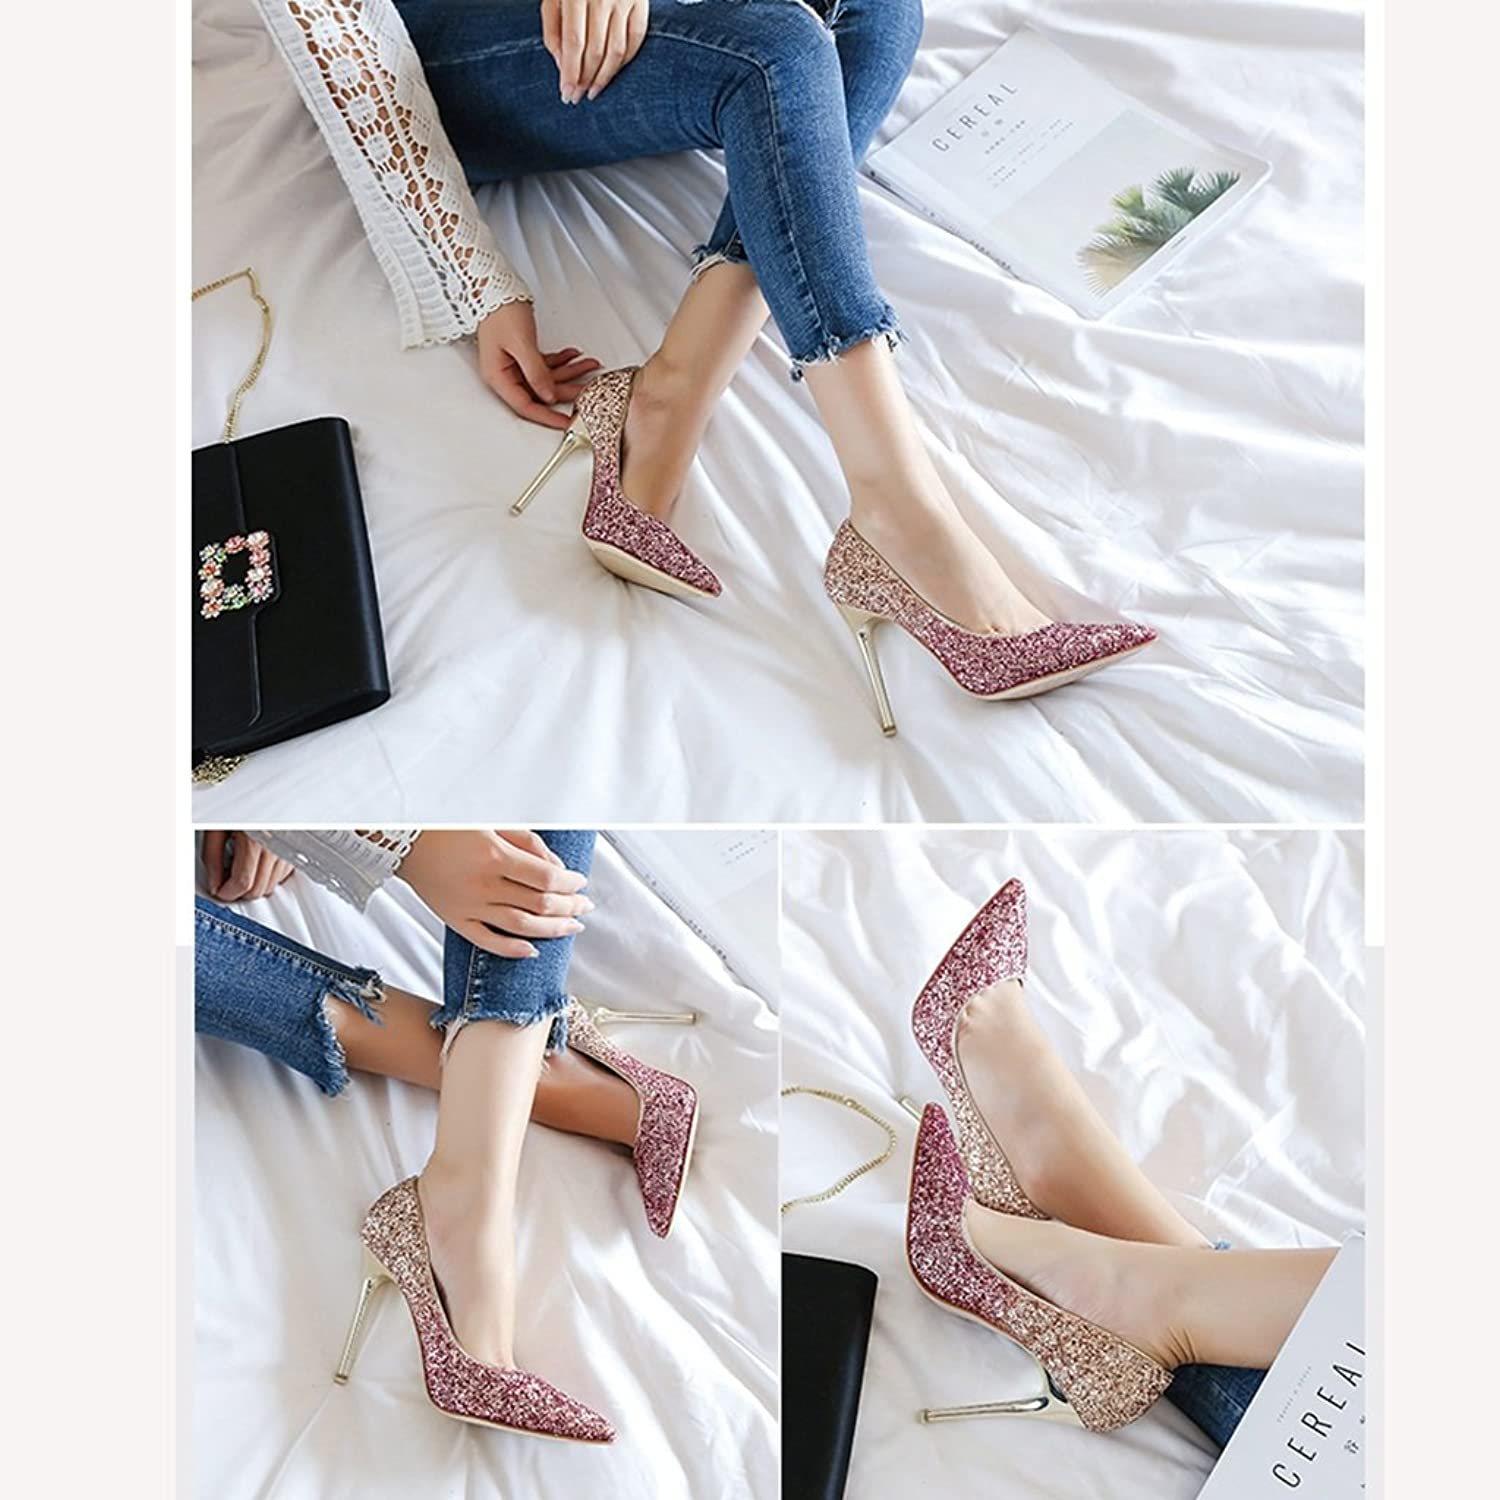 Female Summer tip high Heels high shoes Crystal Wedding shoes Bridesmaid Bride shoes Work shoes Shopping shoes (color   Pink, Size   35)